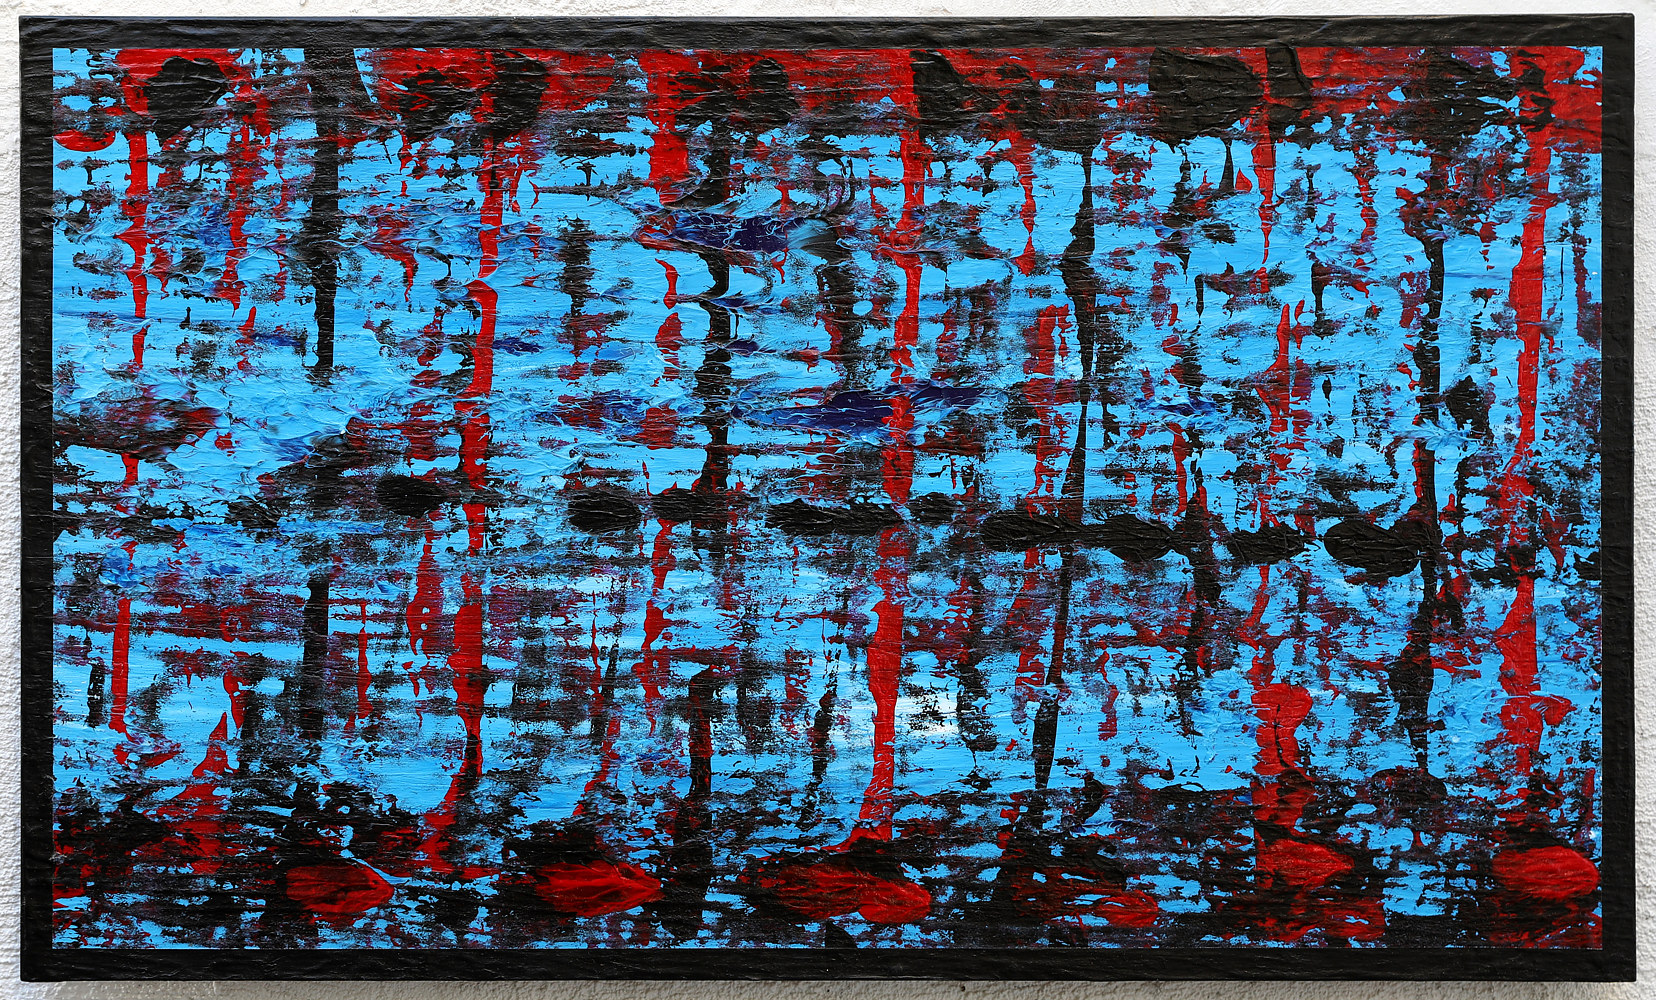 "MC 1 32"" X 24"" inches  by Larry Scaturro"